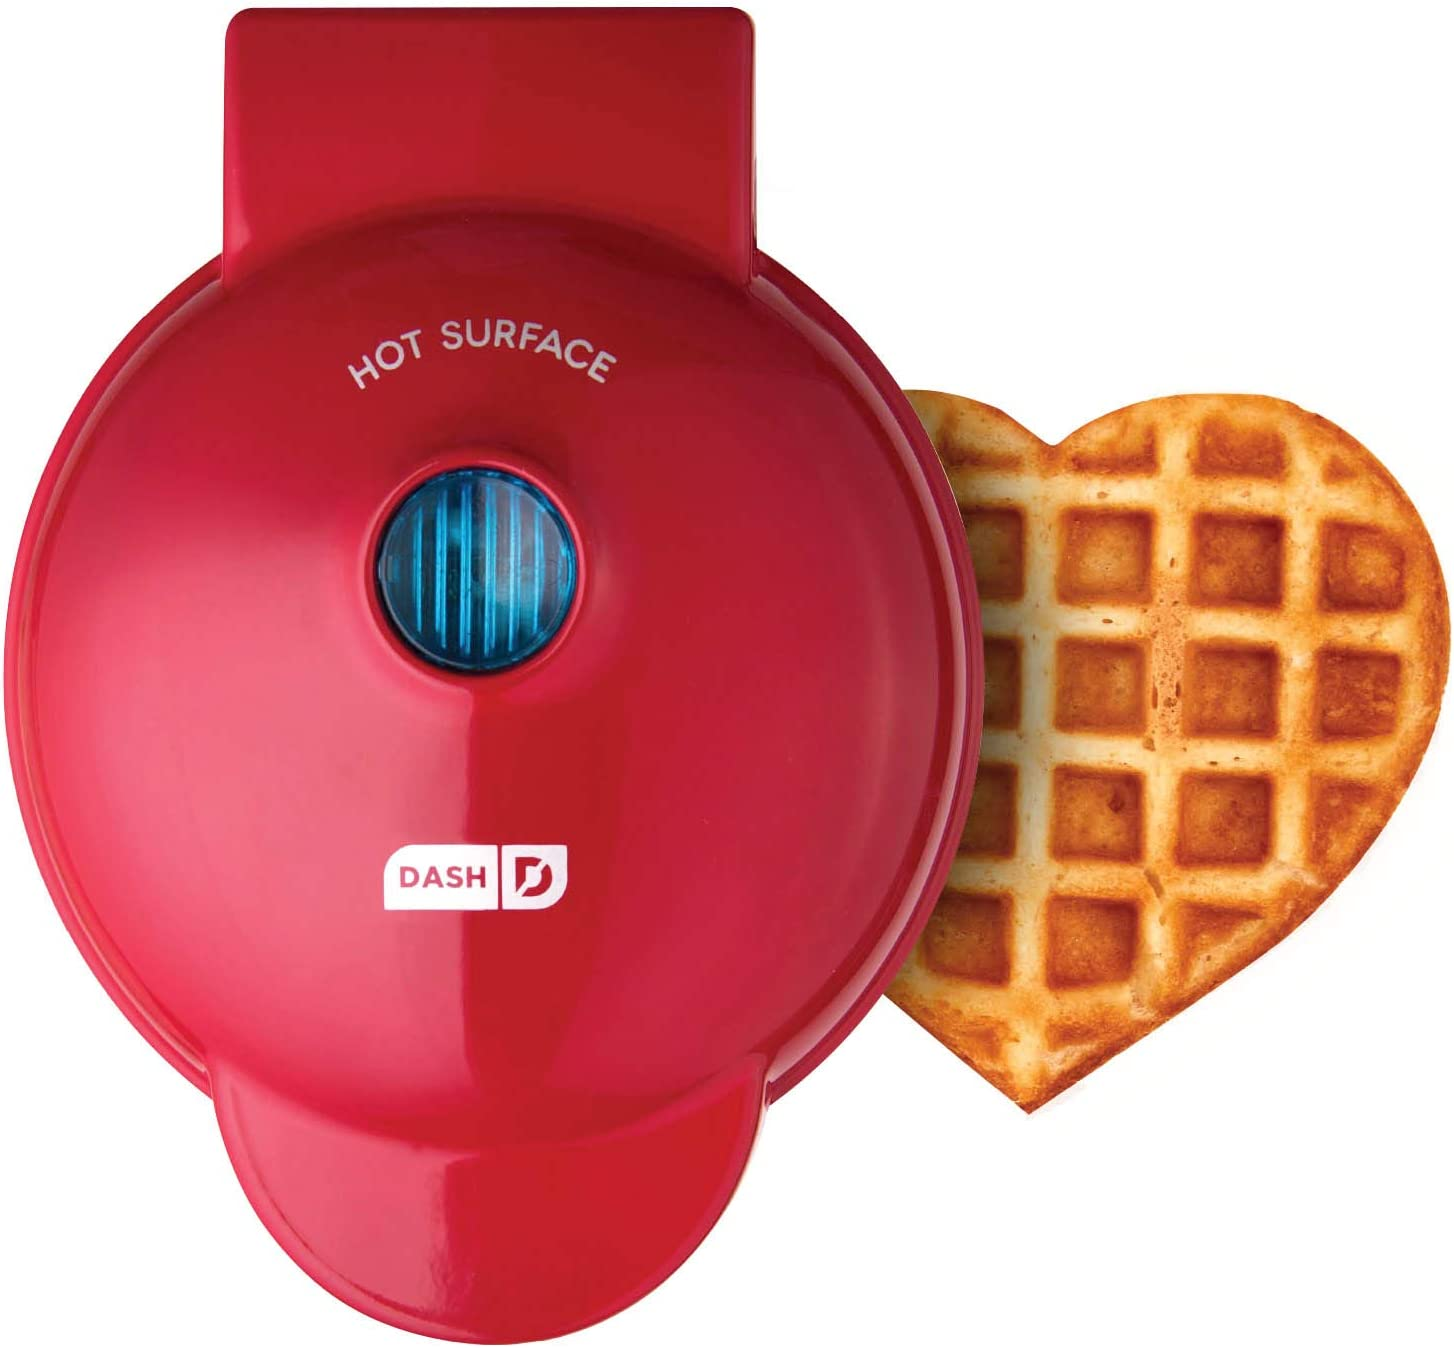 A red-colored waffle maker with a cooked heart-shaped waffle on the side.